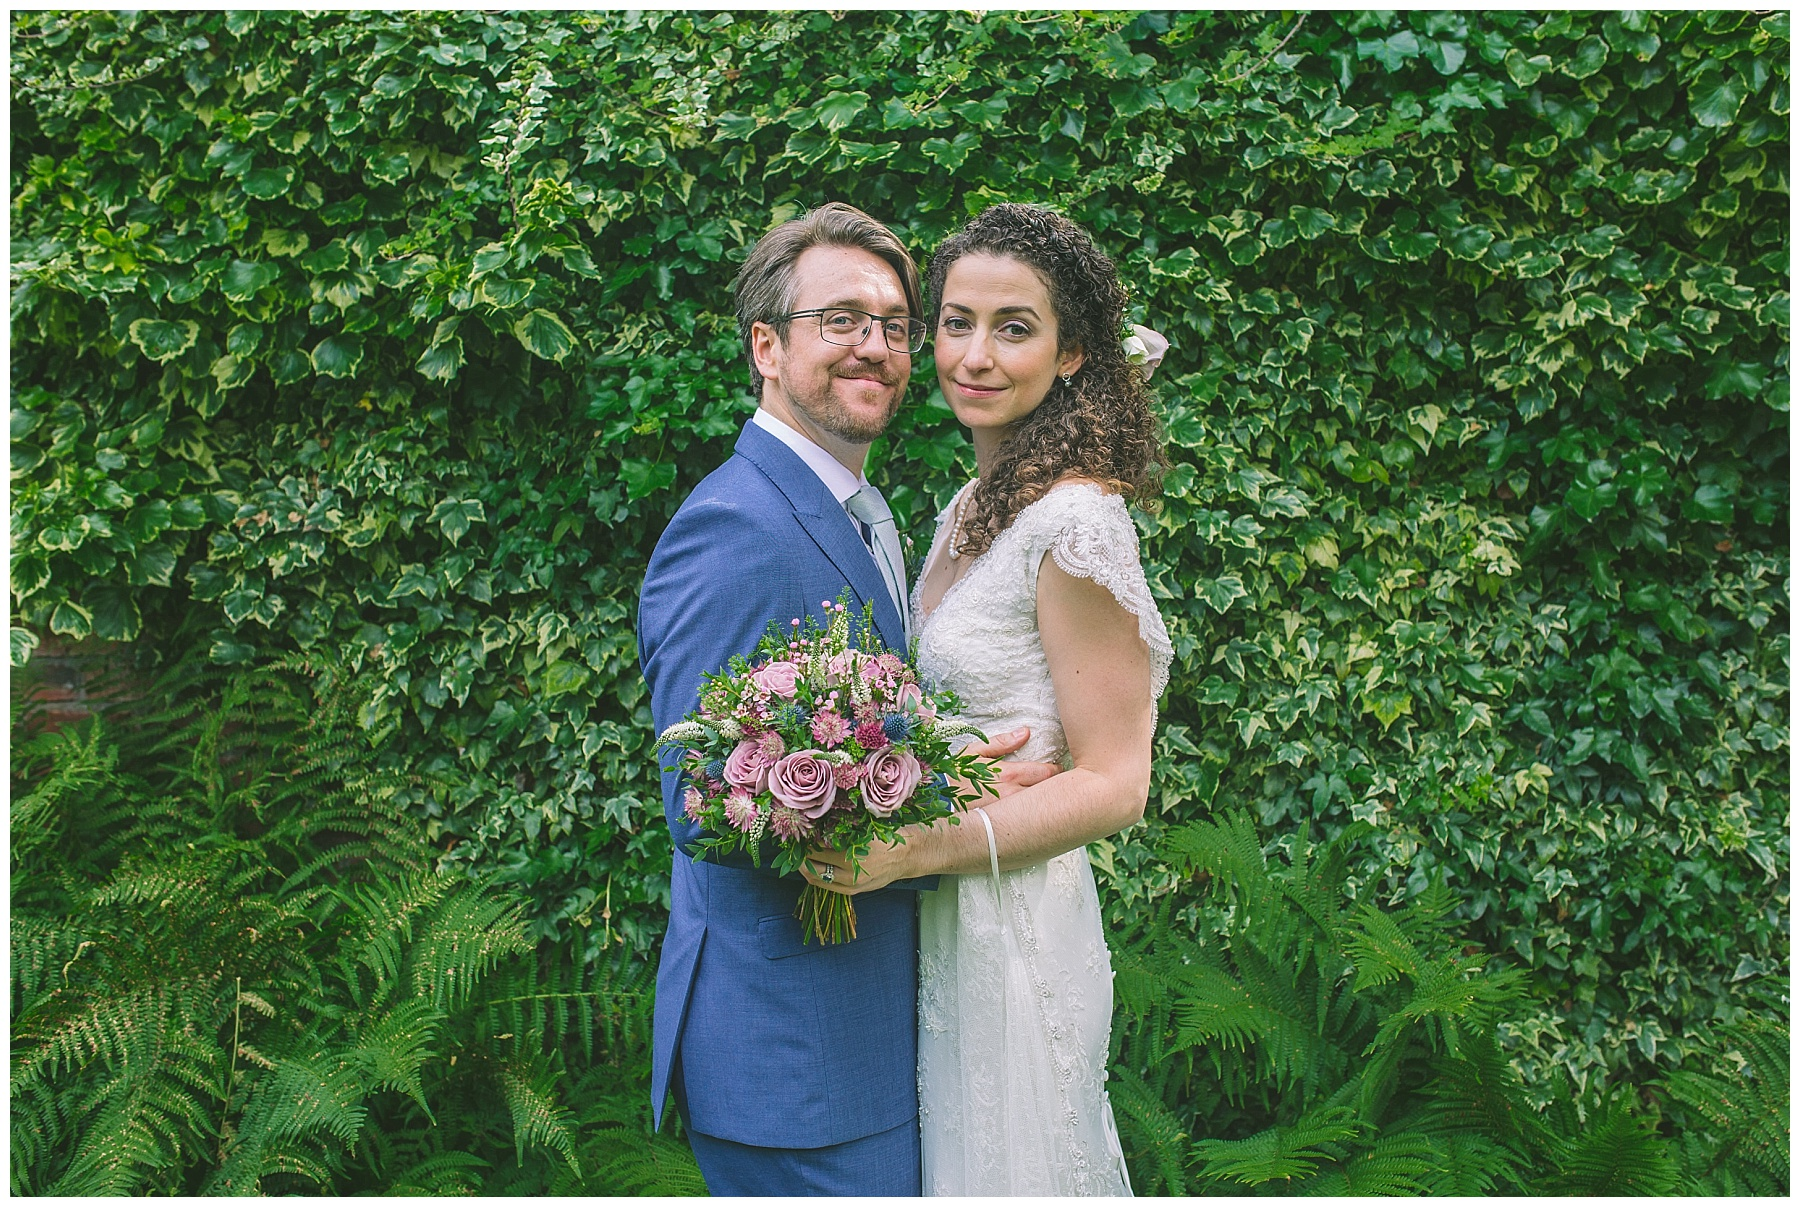 married couple in front of all the greenery in the gardens of Eleven Didsbury Park